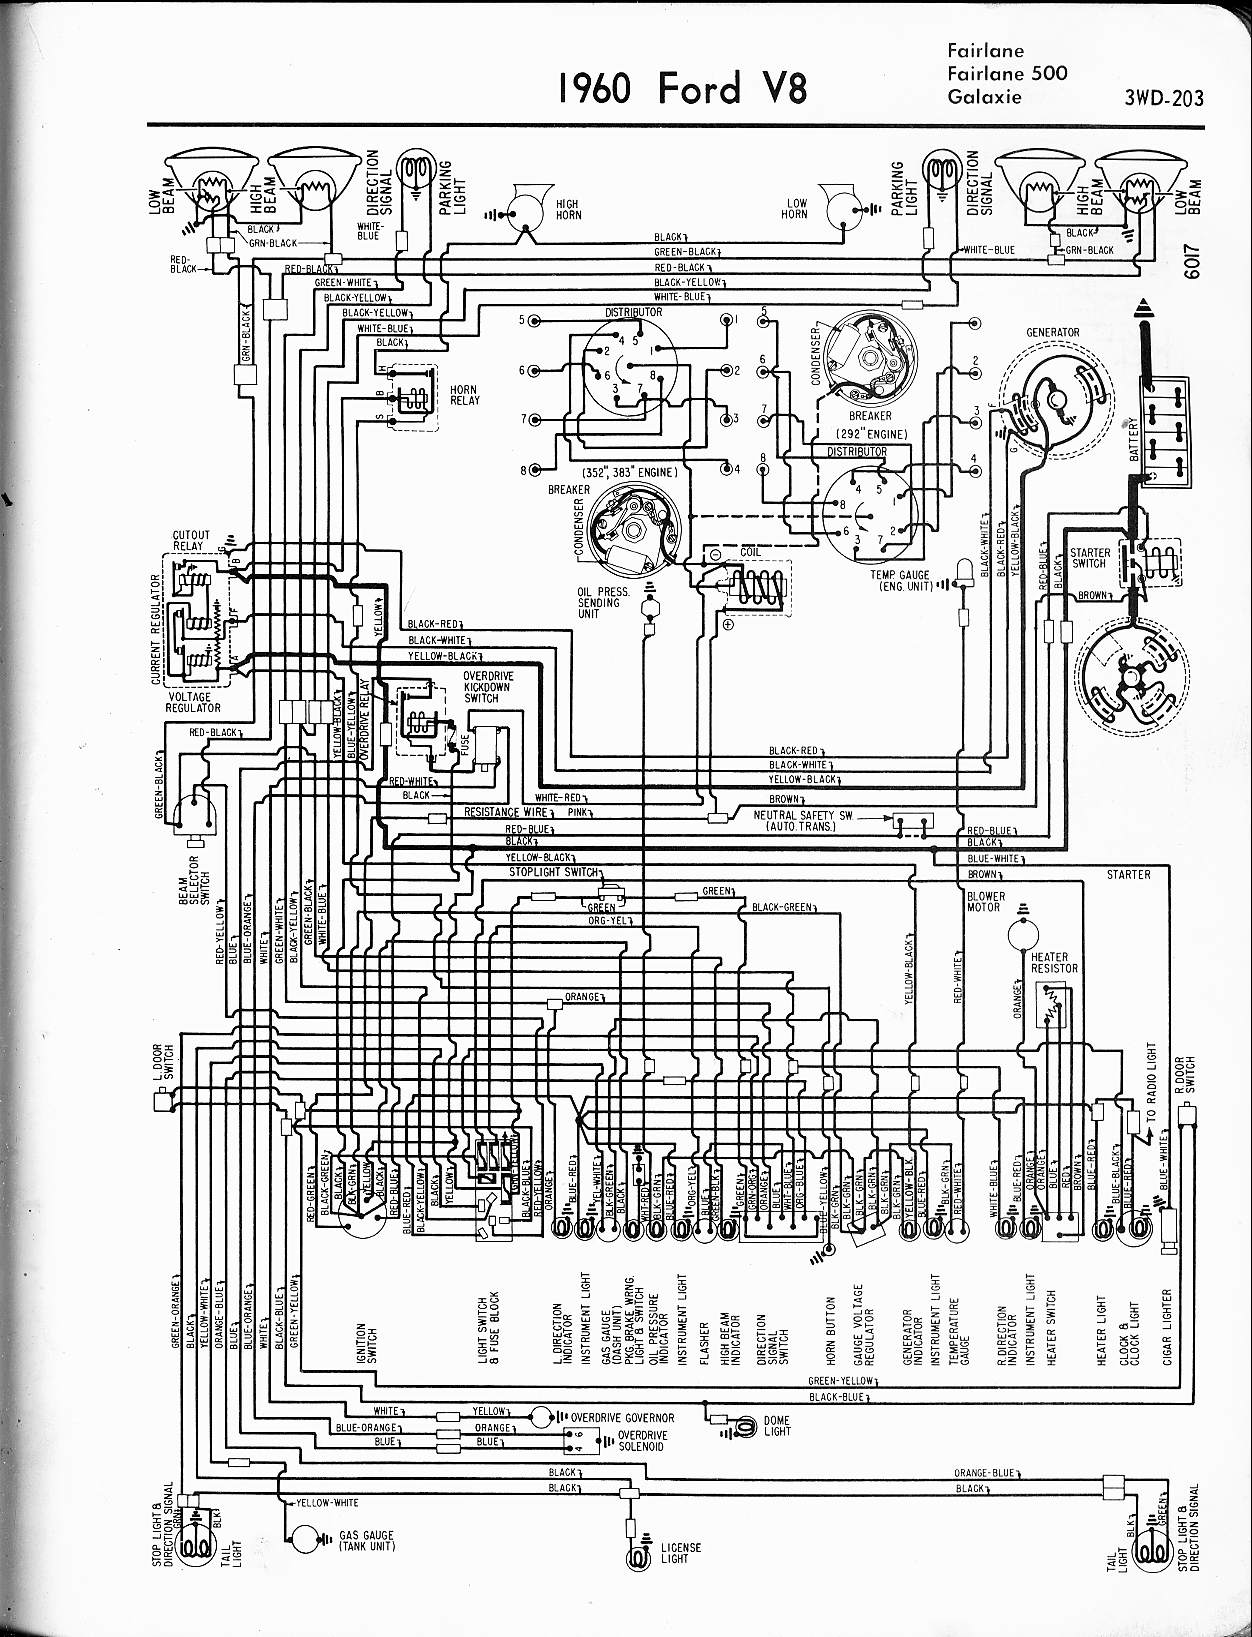 Ford 500 Wire Diagram Manual Of Wiring 2007 57 65 Diagrams Rh Oldcarmanualproject Com 2005 Five Hundred